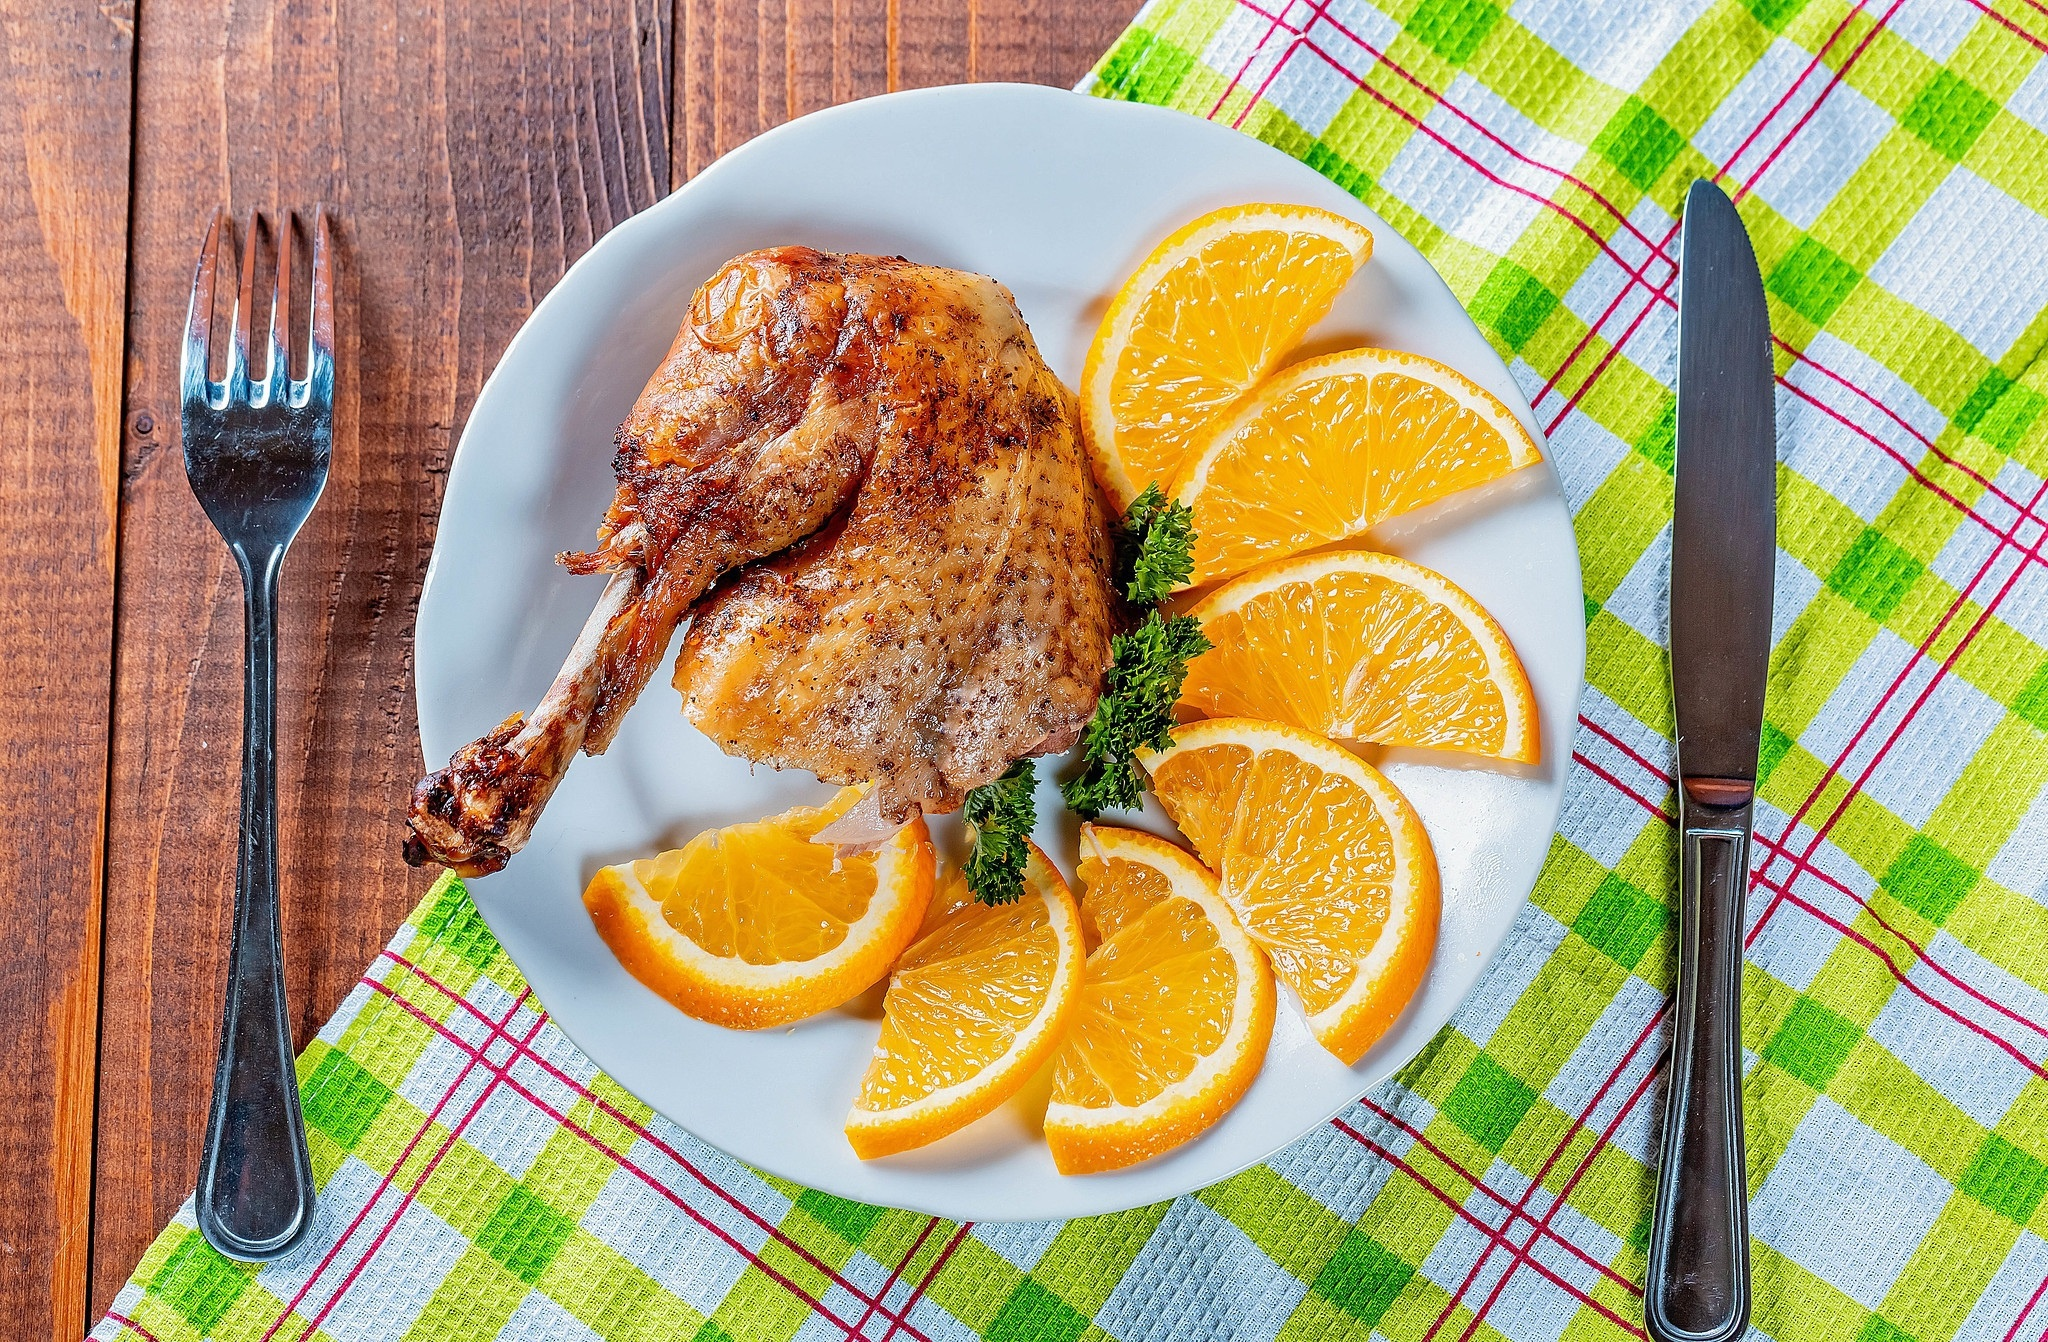 Image: Meat, chicken, orange slices